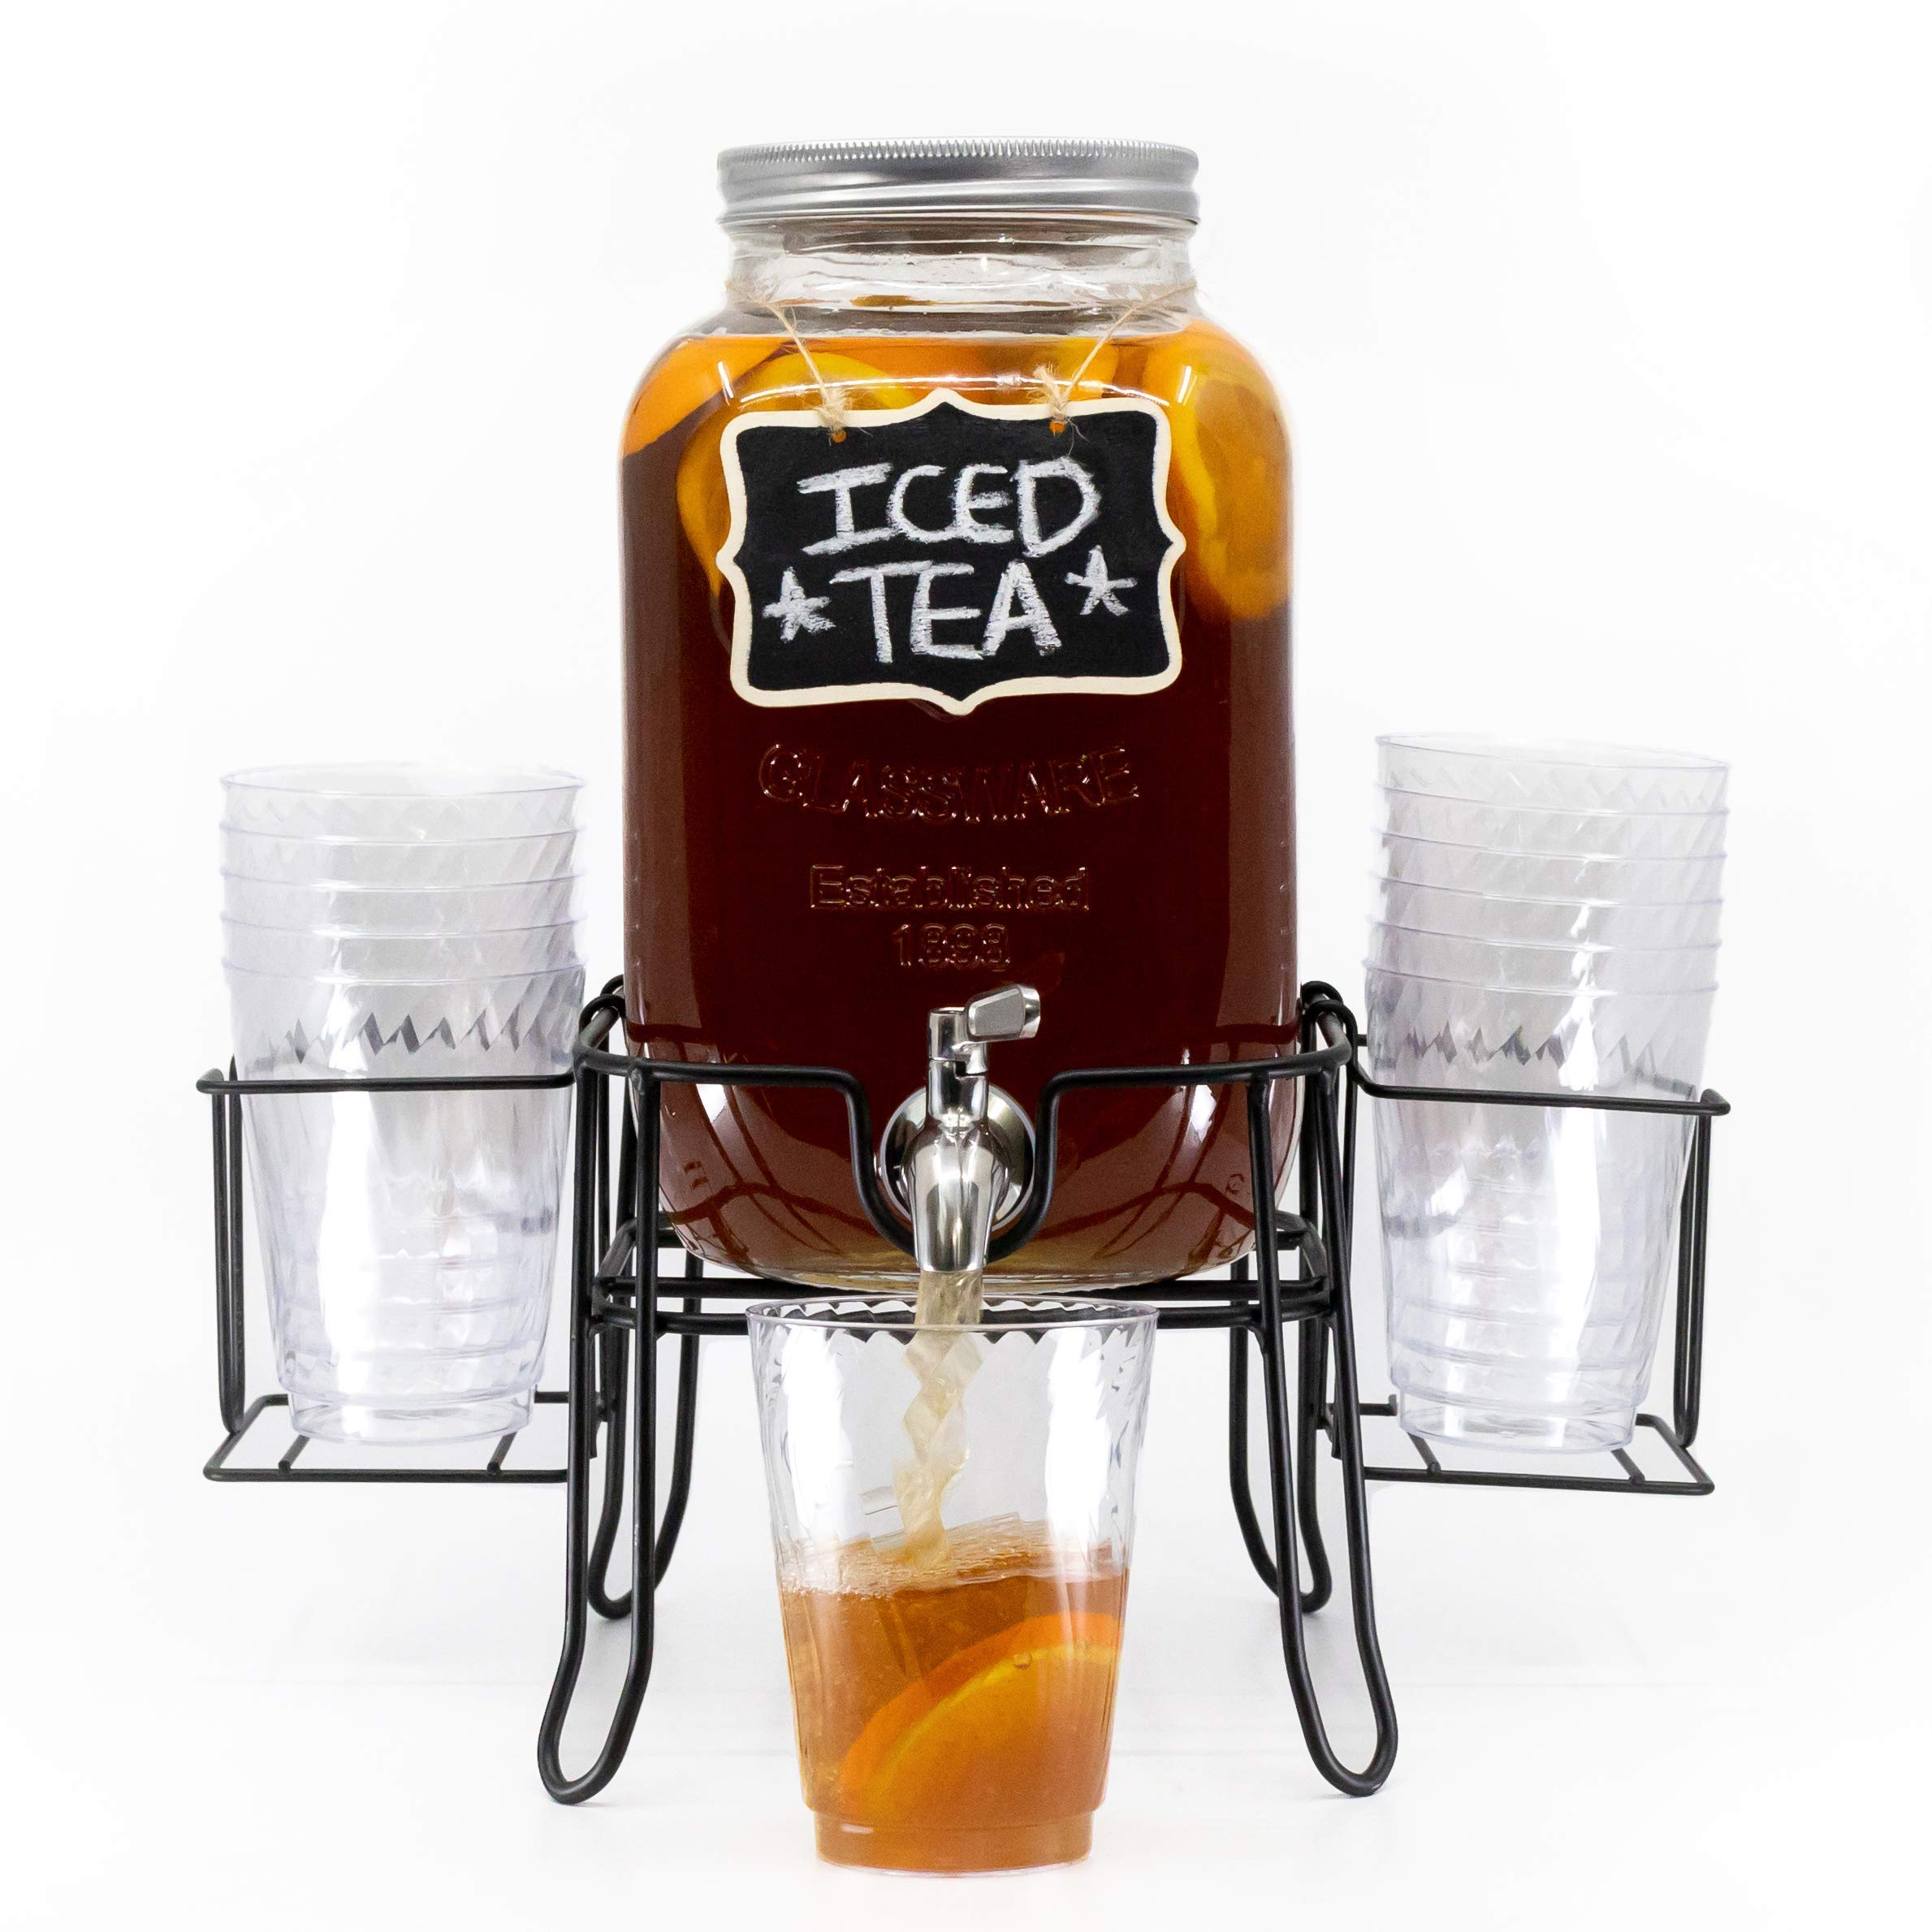 4 Kitchen 1 Gallon Glass Iced Beverage Dispenser with Cup Holder 100% Leak-Free Stainless Steel Spigot, Sturdy and Durable Cold Drink Mason Jar Holder with Metal Stand